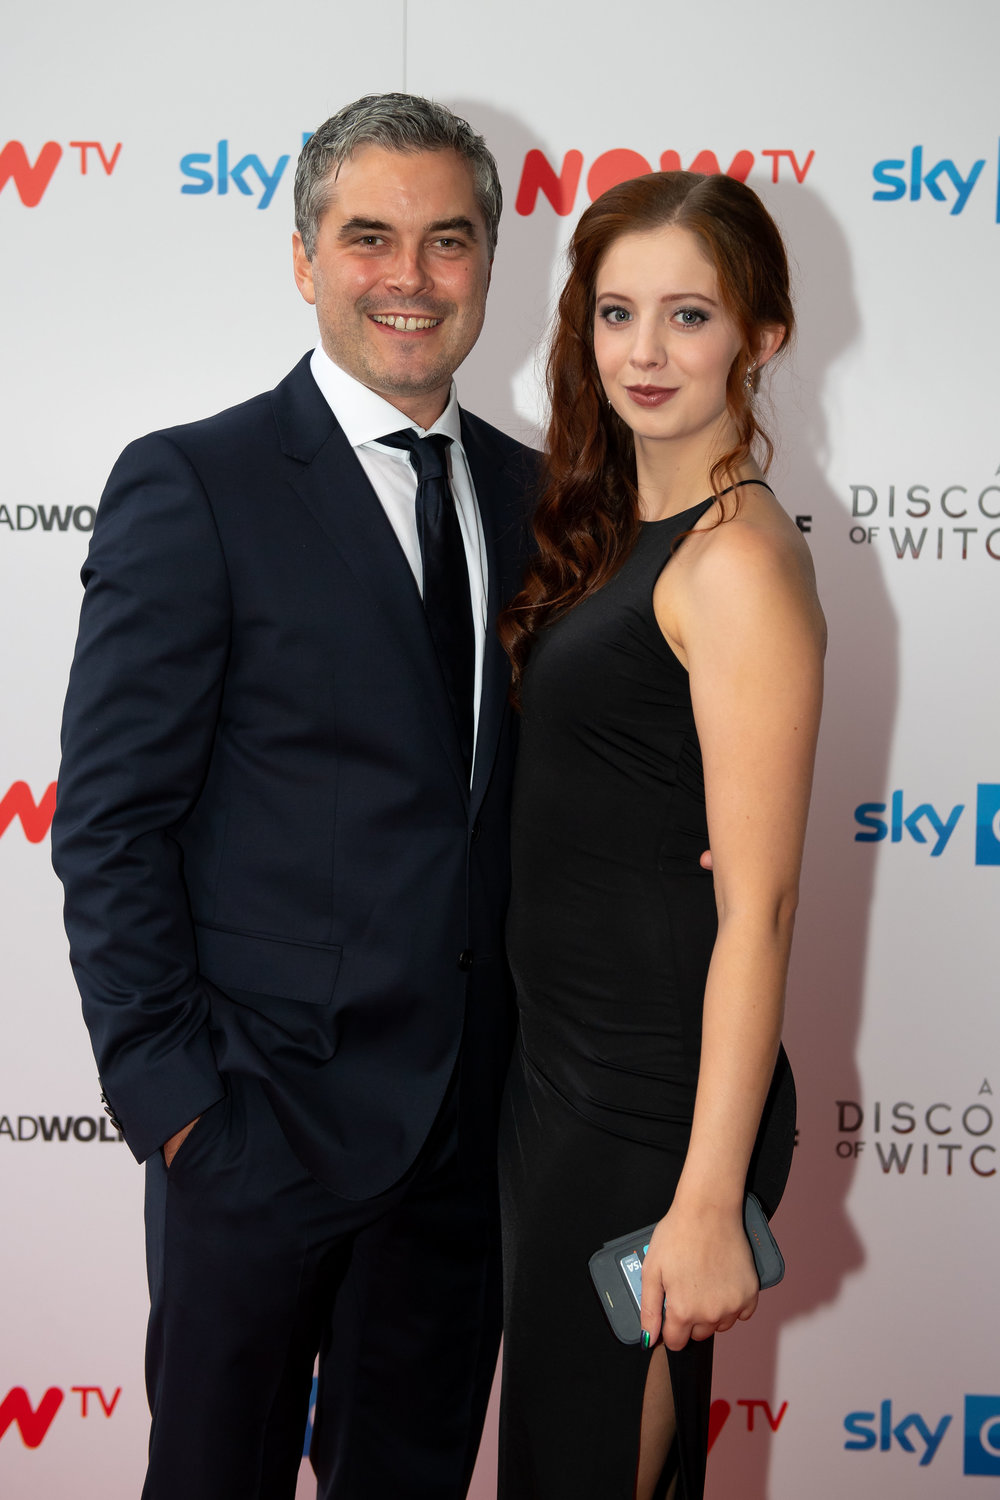 CARDIFF, WALES - SEPTEMBER 05: Trystan Gravelle and Sarah Louise Madison attend the UK Premiere of 'A Discovery Of Witches' at Cineworld on September 5, 2018 in Cardiff, Wales. (Photo by Matthew Horwood/Getty Images)